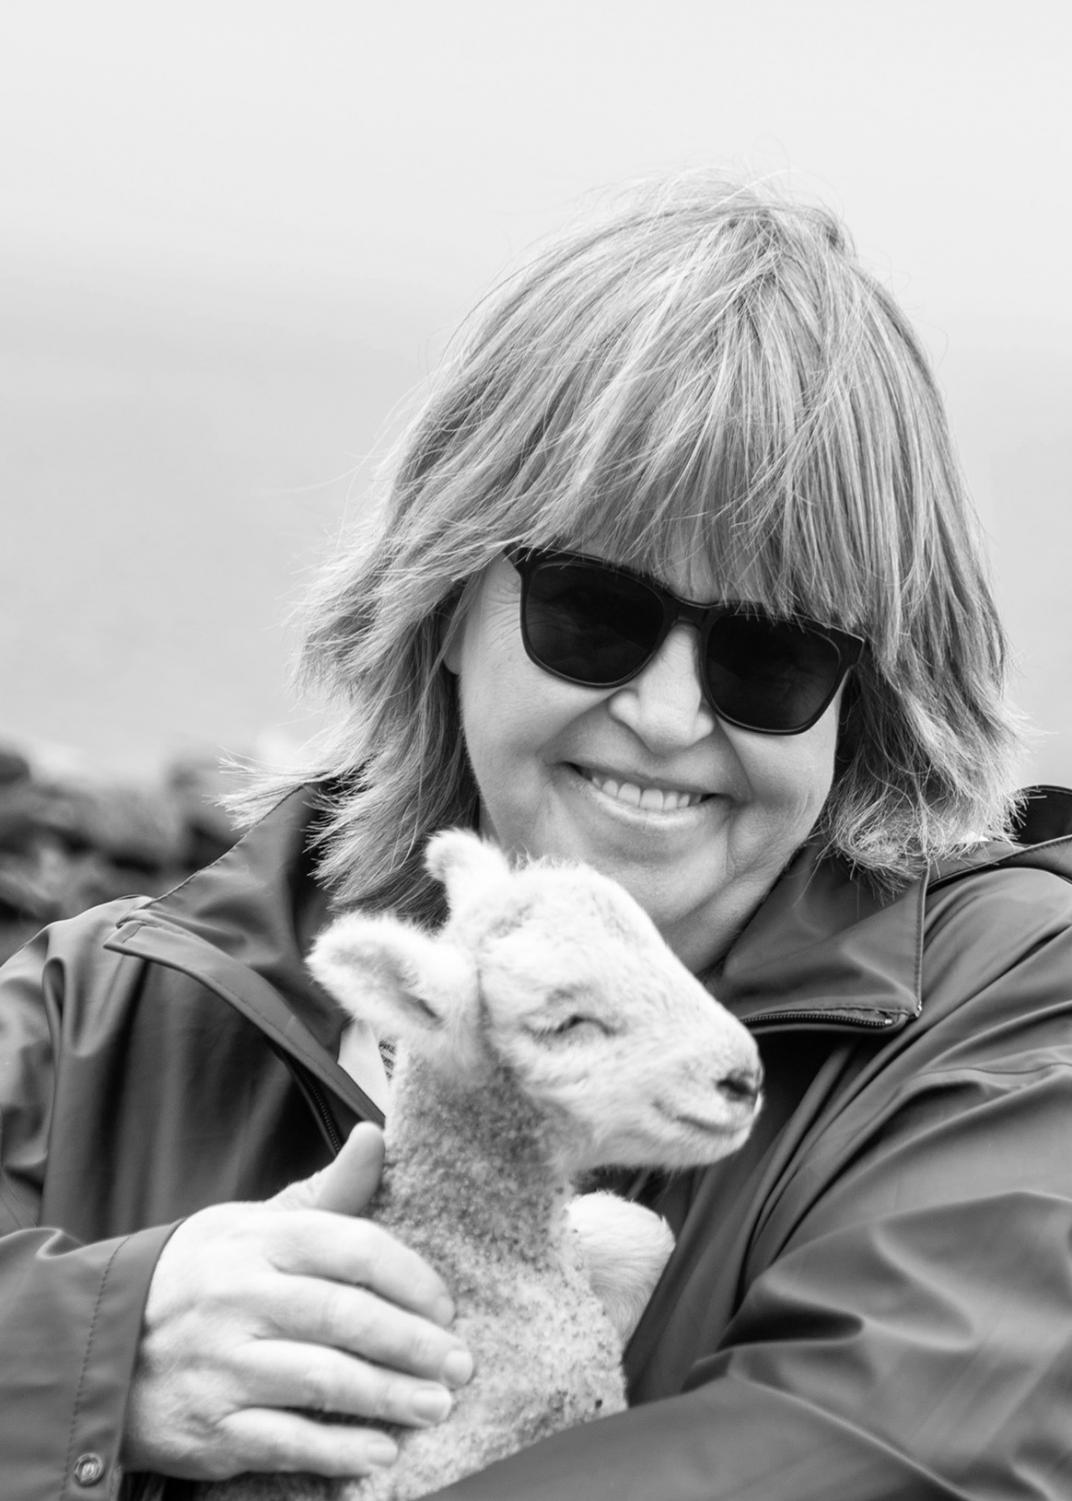 Jamie Gilbert holding a lamb in Dublin during her study abroad trip summer of 2018.